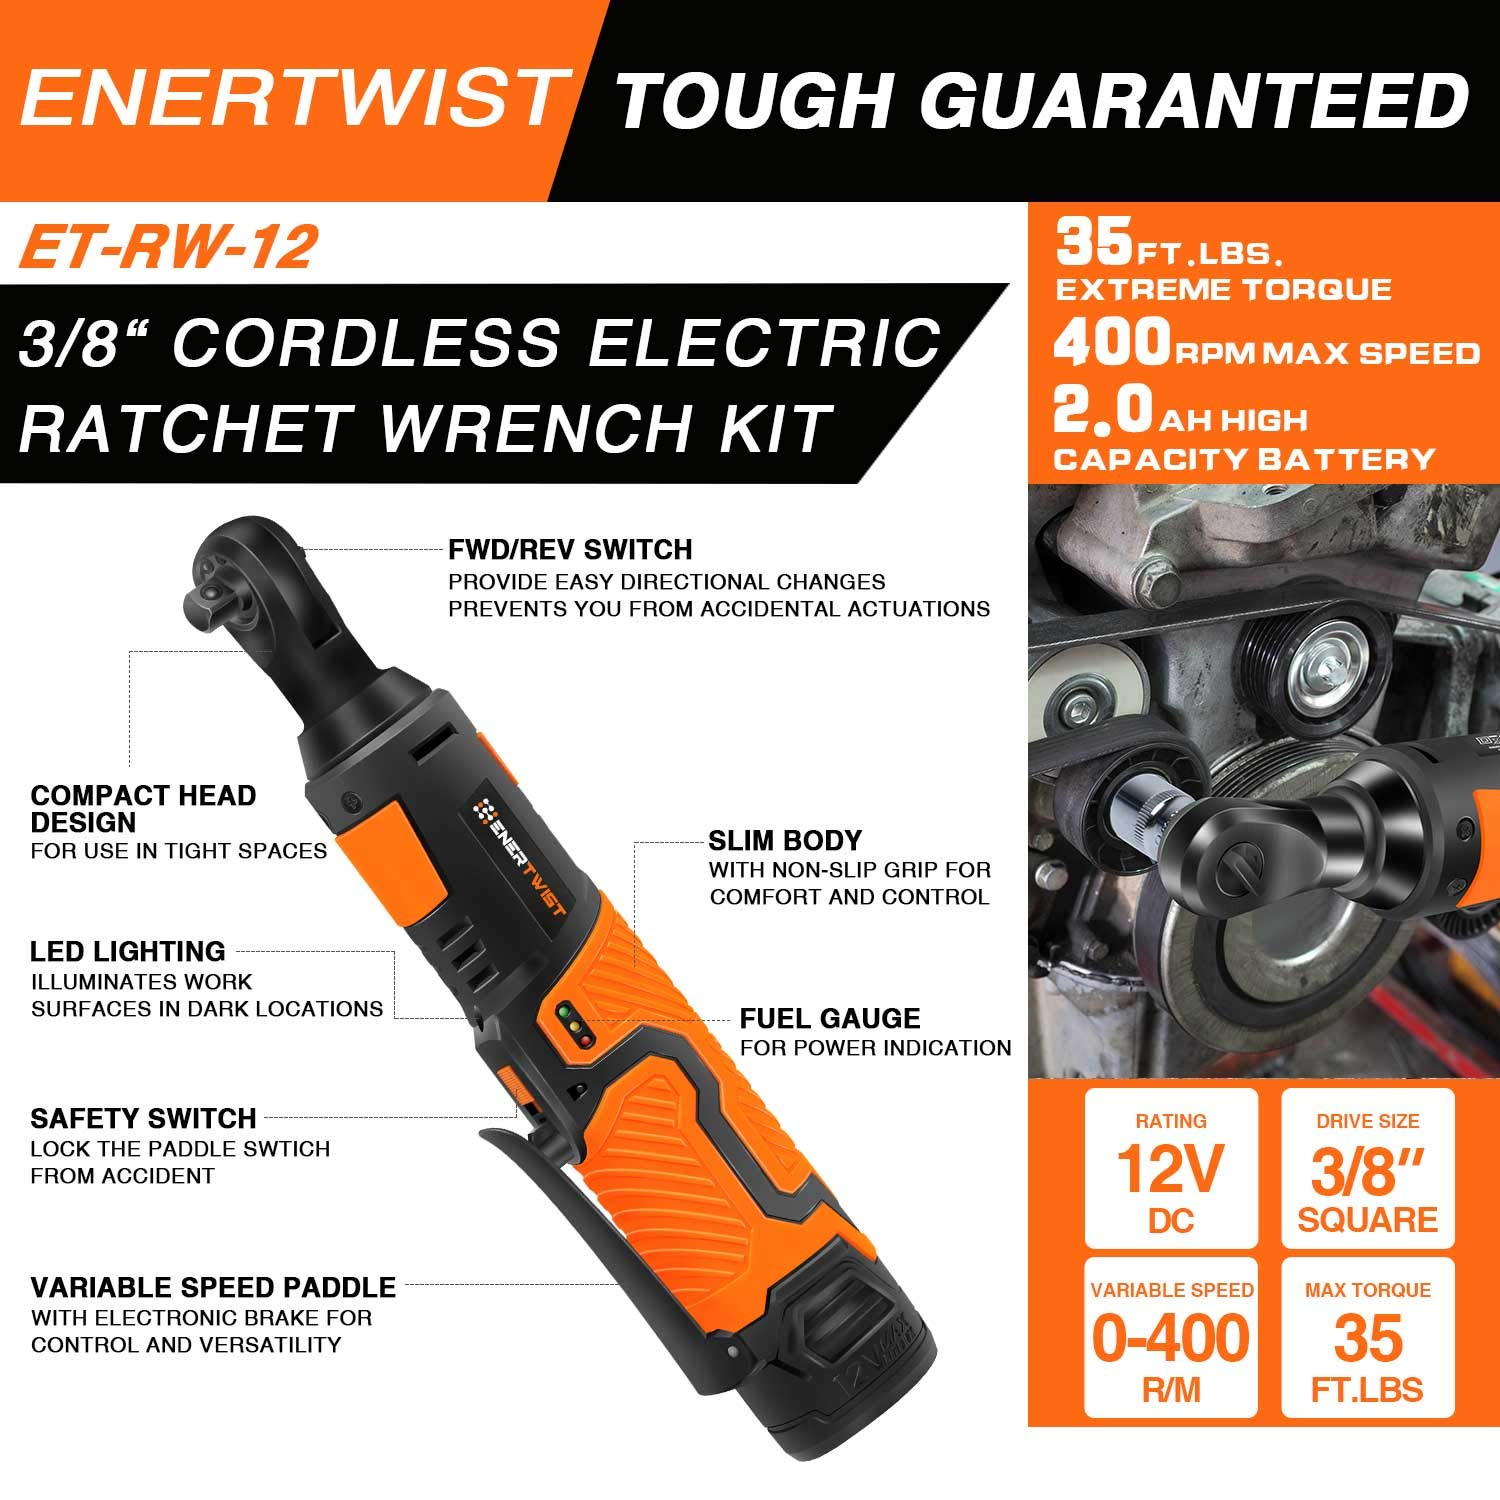 EnerTwist Cordless Electric Ratchet Wrench 3/8 Inch with 12V Lithium-ion Battery and Fast Charger Includes 7-Piece 3/8'' Metric Sockets Kit and 1/4'' Adaptor, ET-RW-12 by ENERTWIST (Image #2)